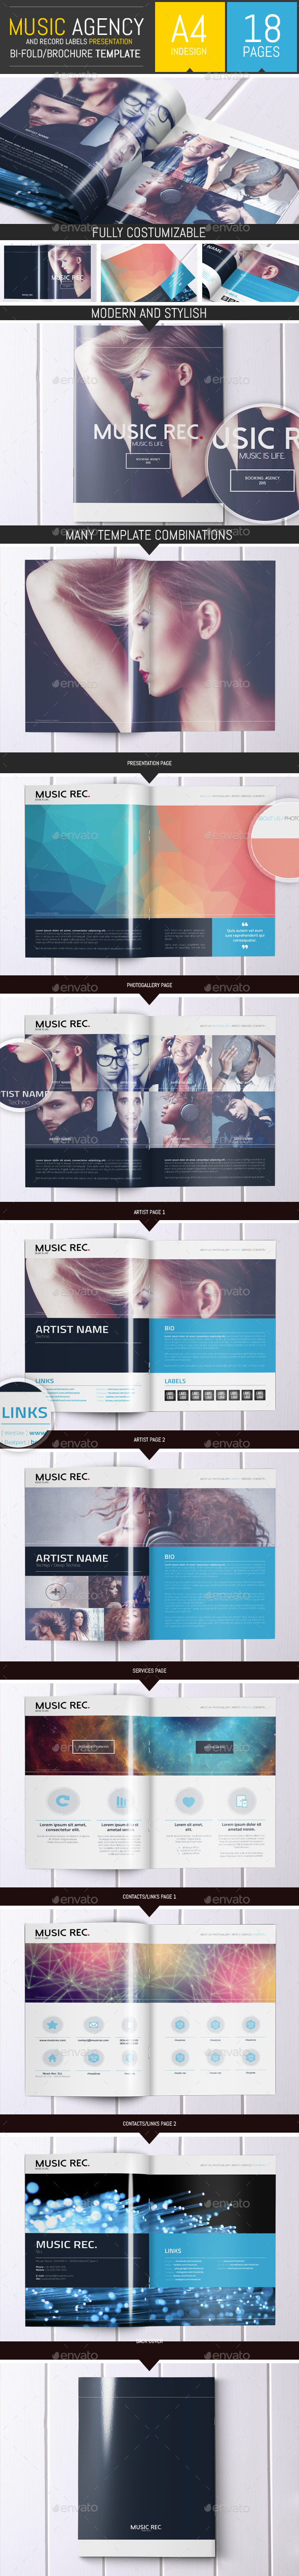 GraphicRiver Music Agency Presentation Brochure Bi-fold 9120347